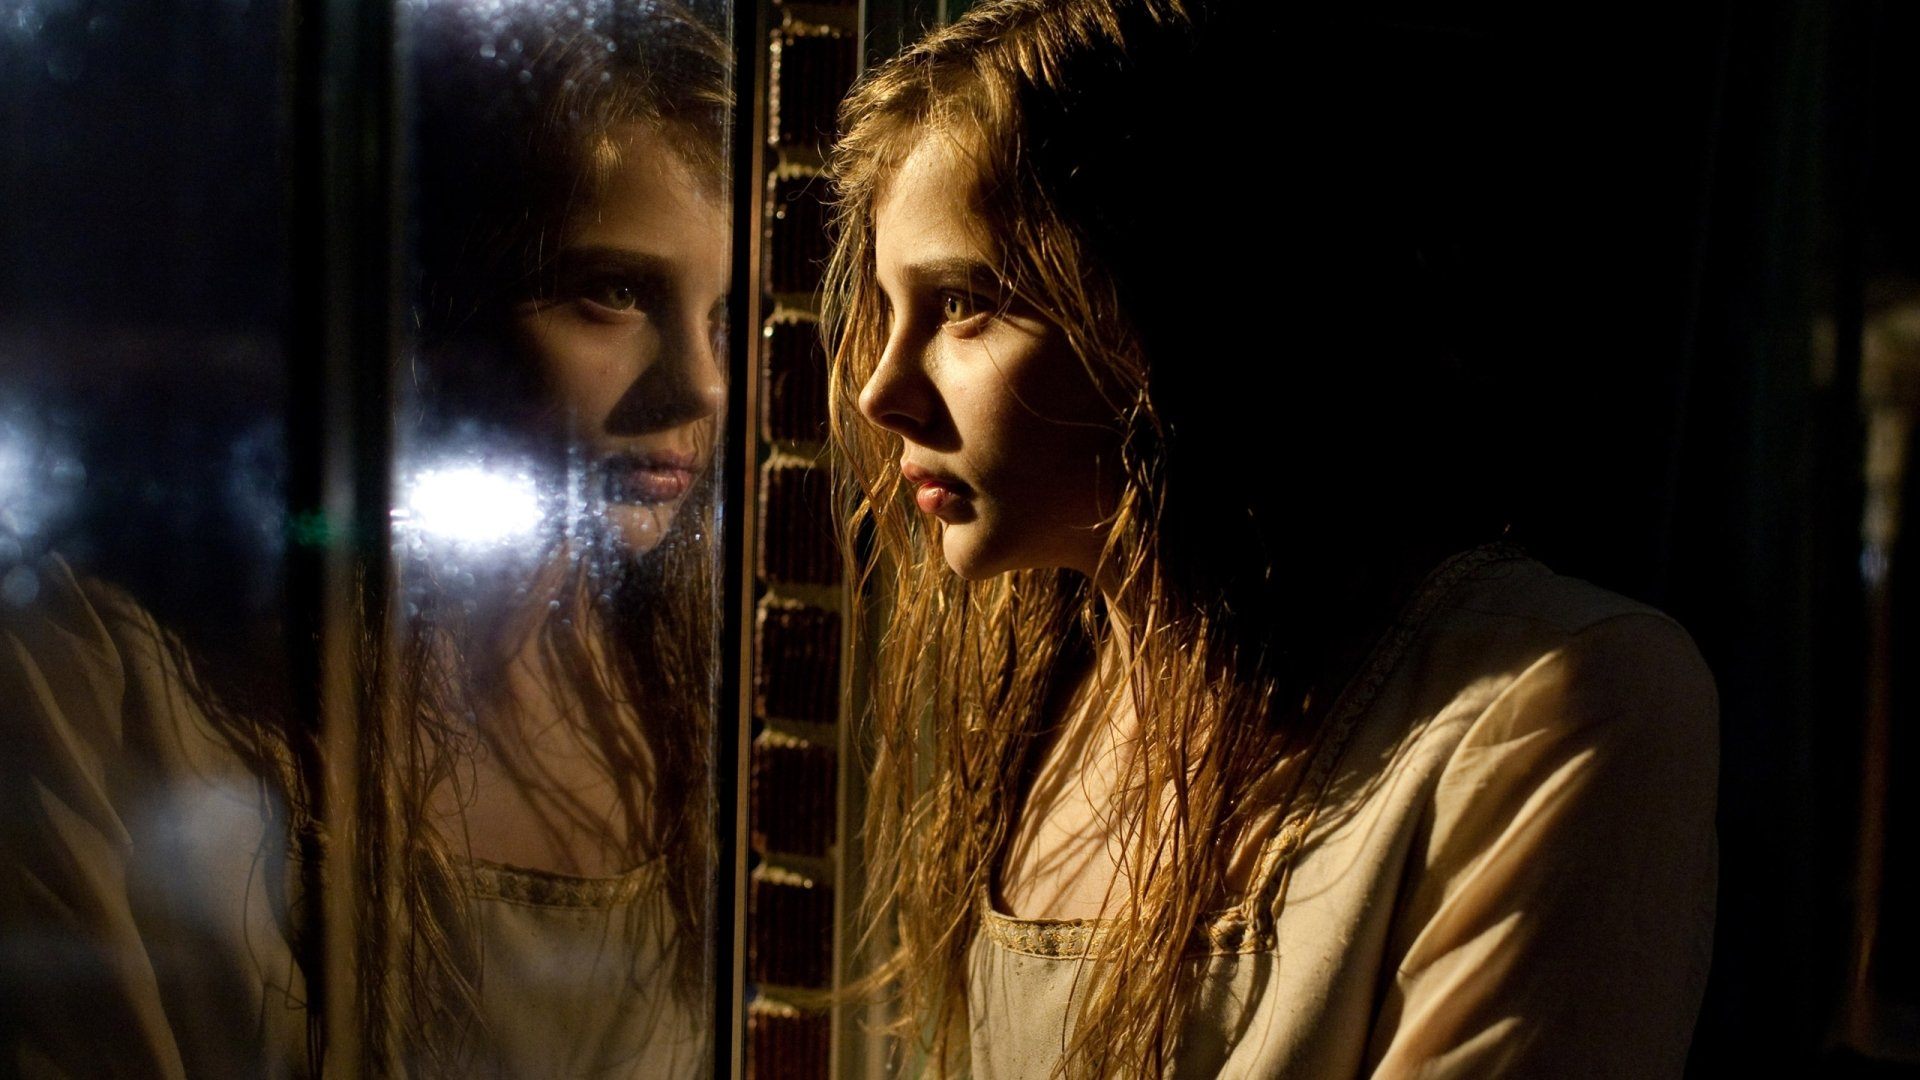 Movie - Let Me In  Chloë Grace Moretz Wallpaper